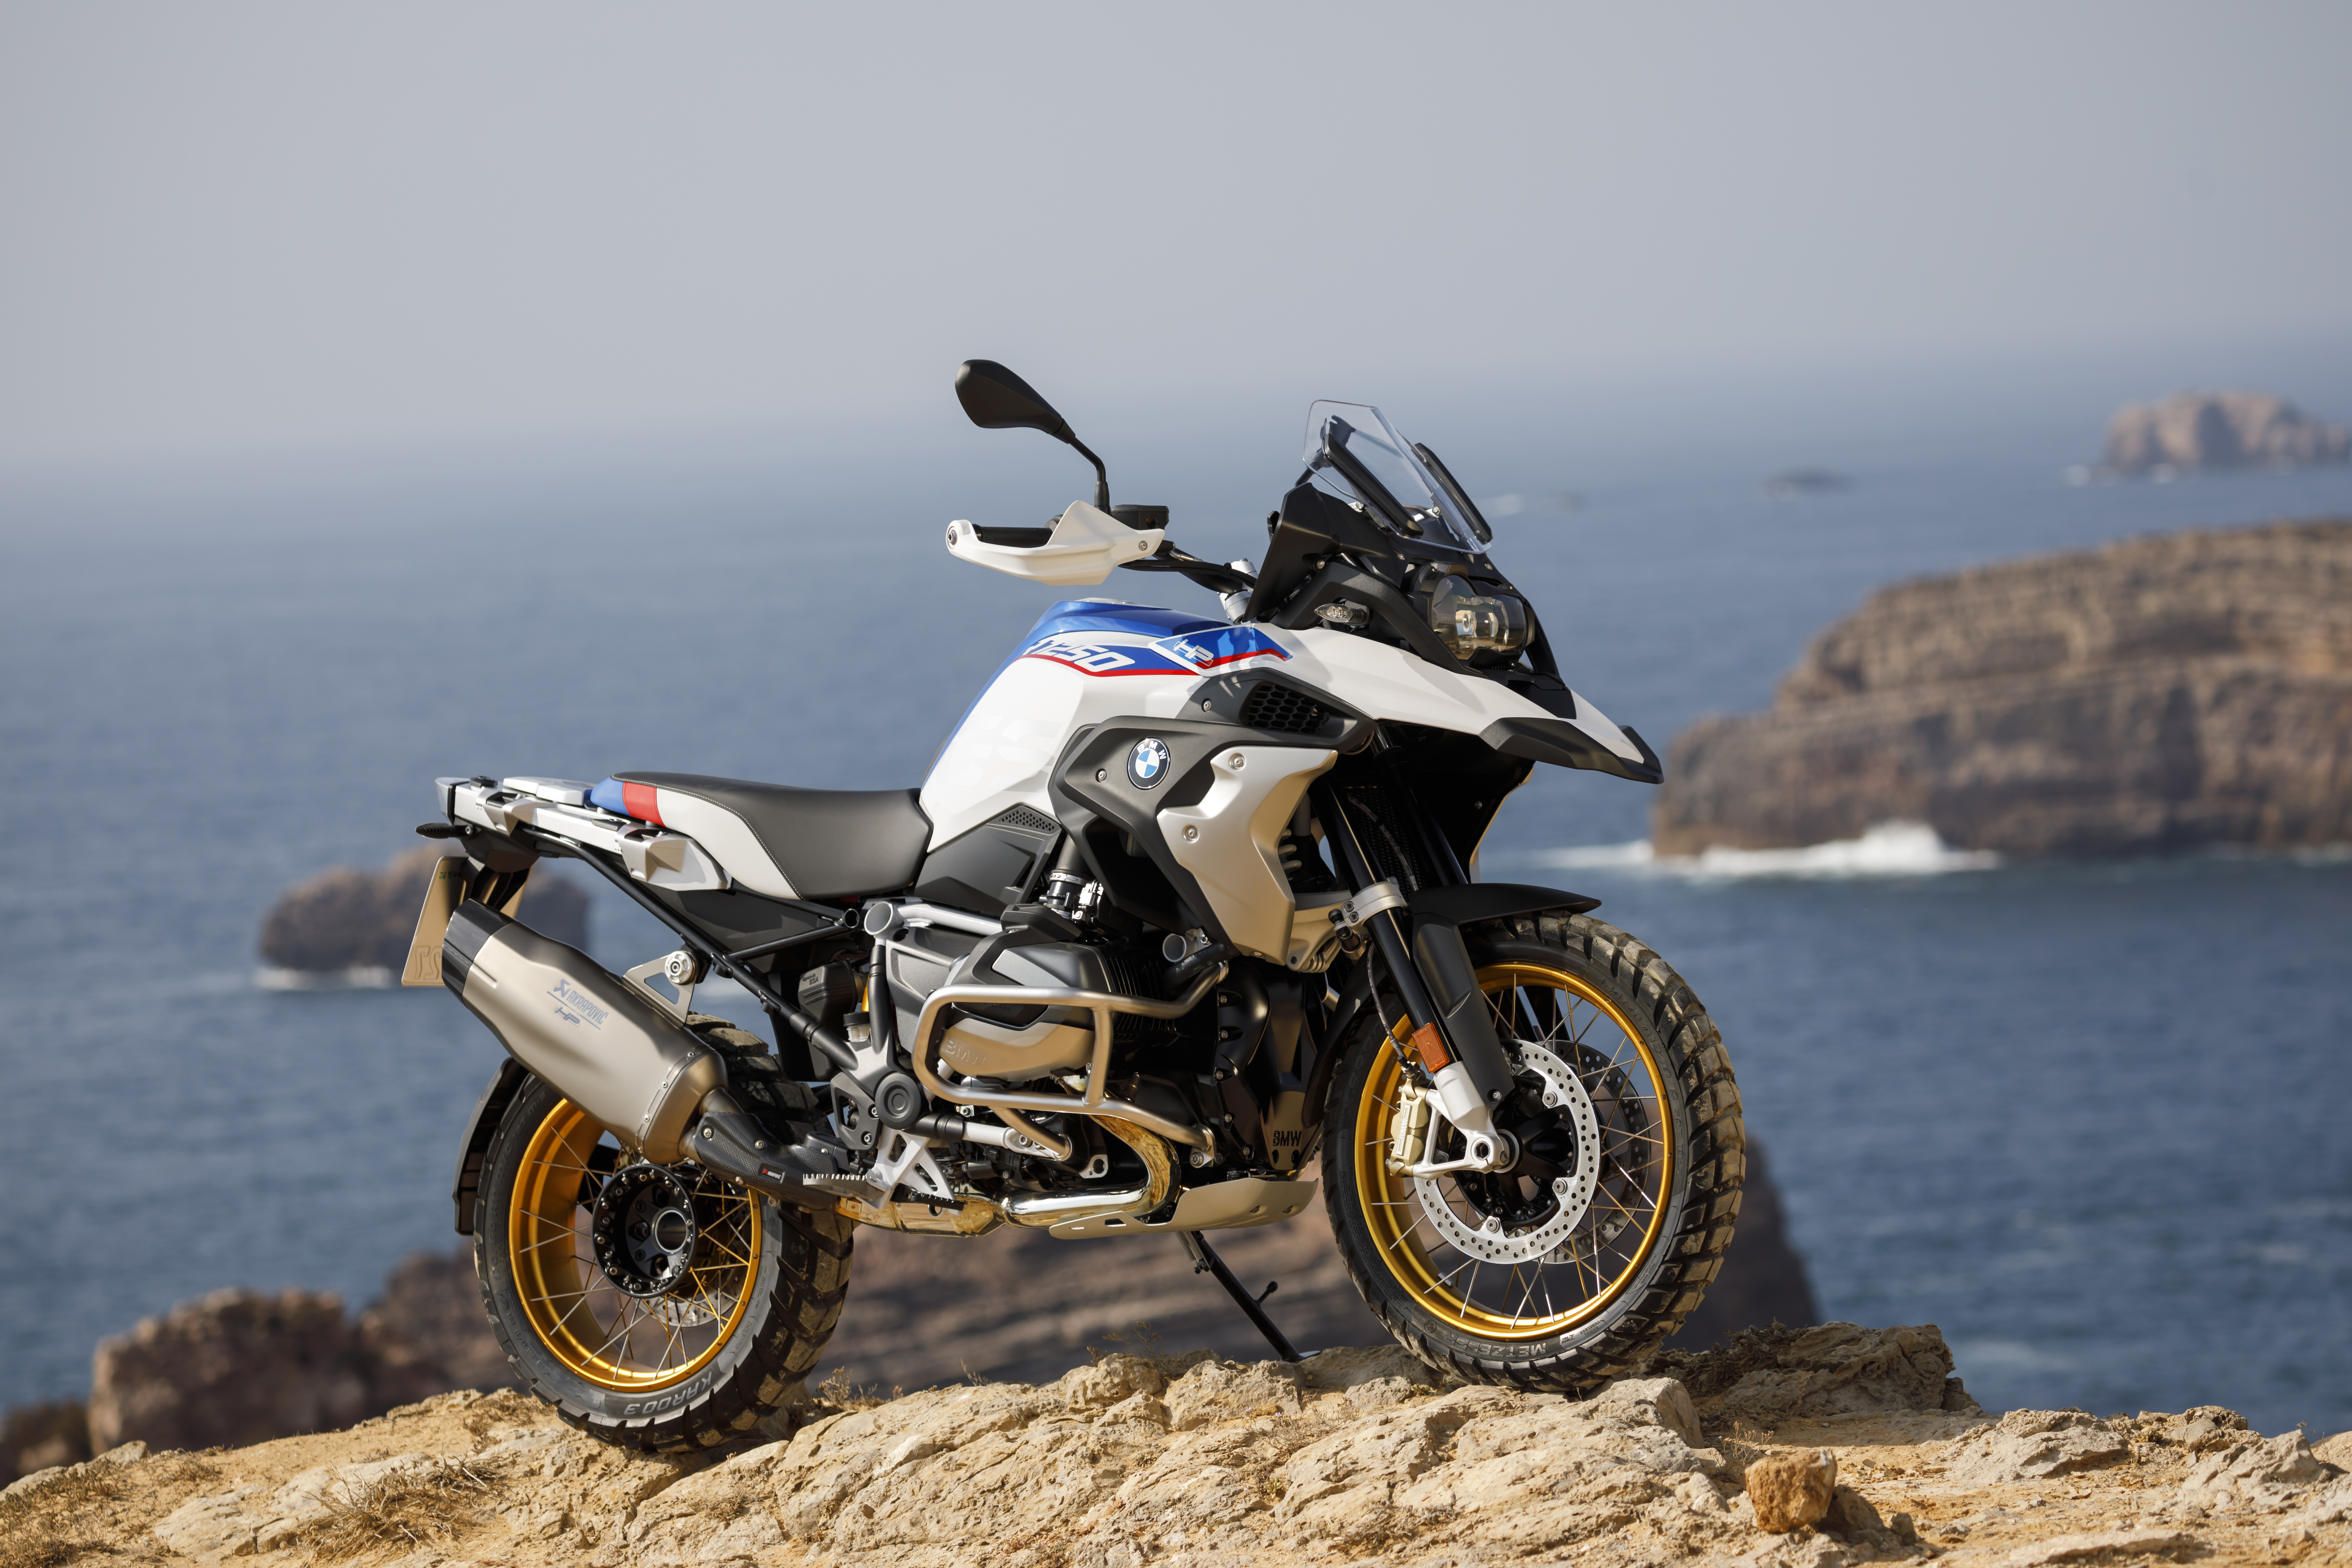 Scoop Review: BMW R 1250 GS in Portugal – The Bike Show on